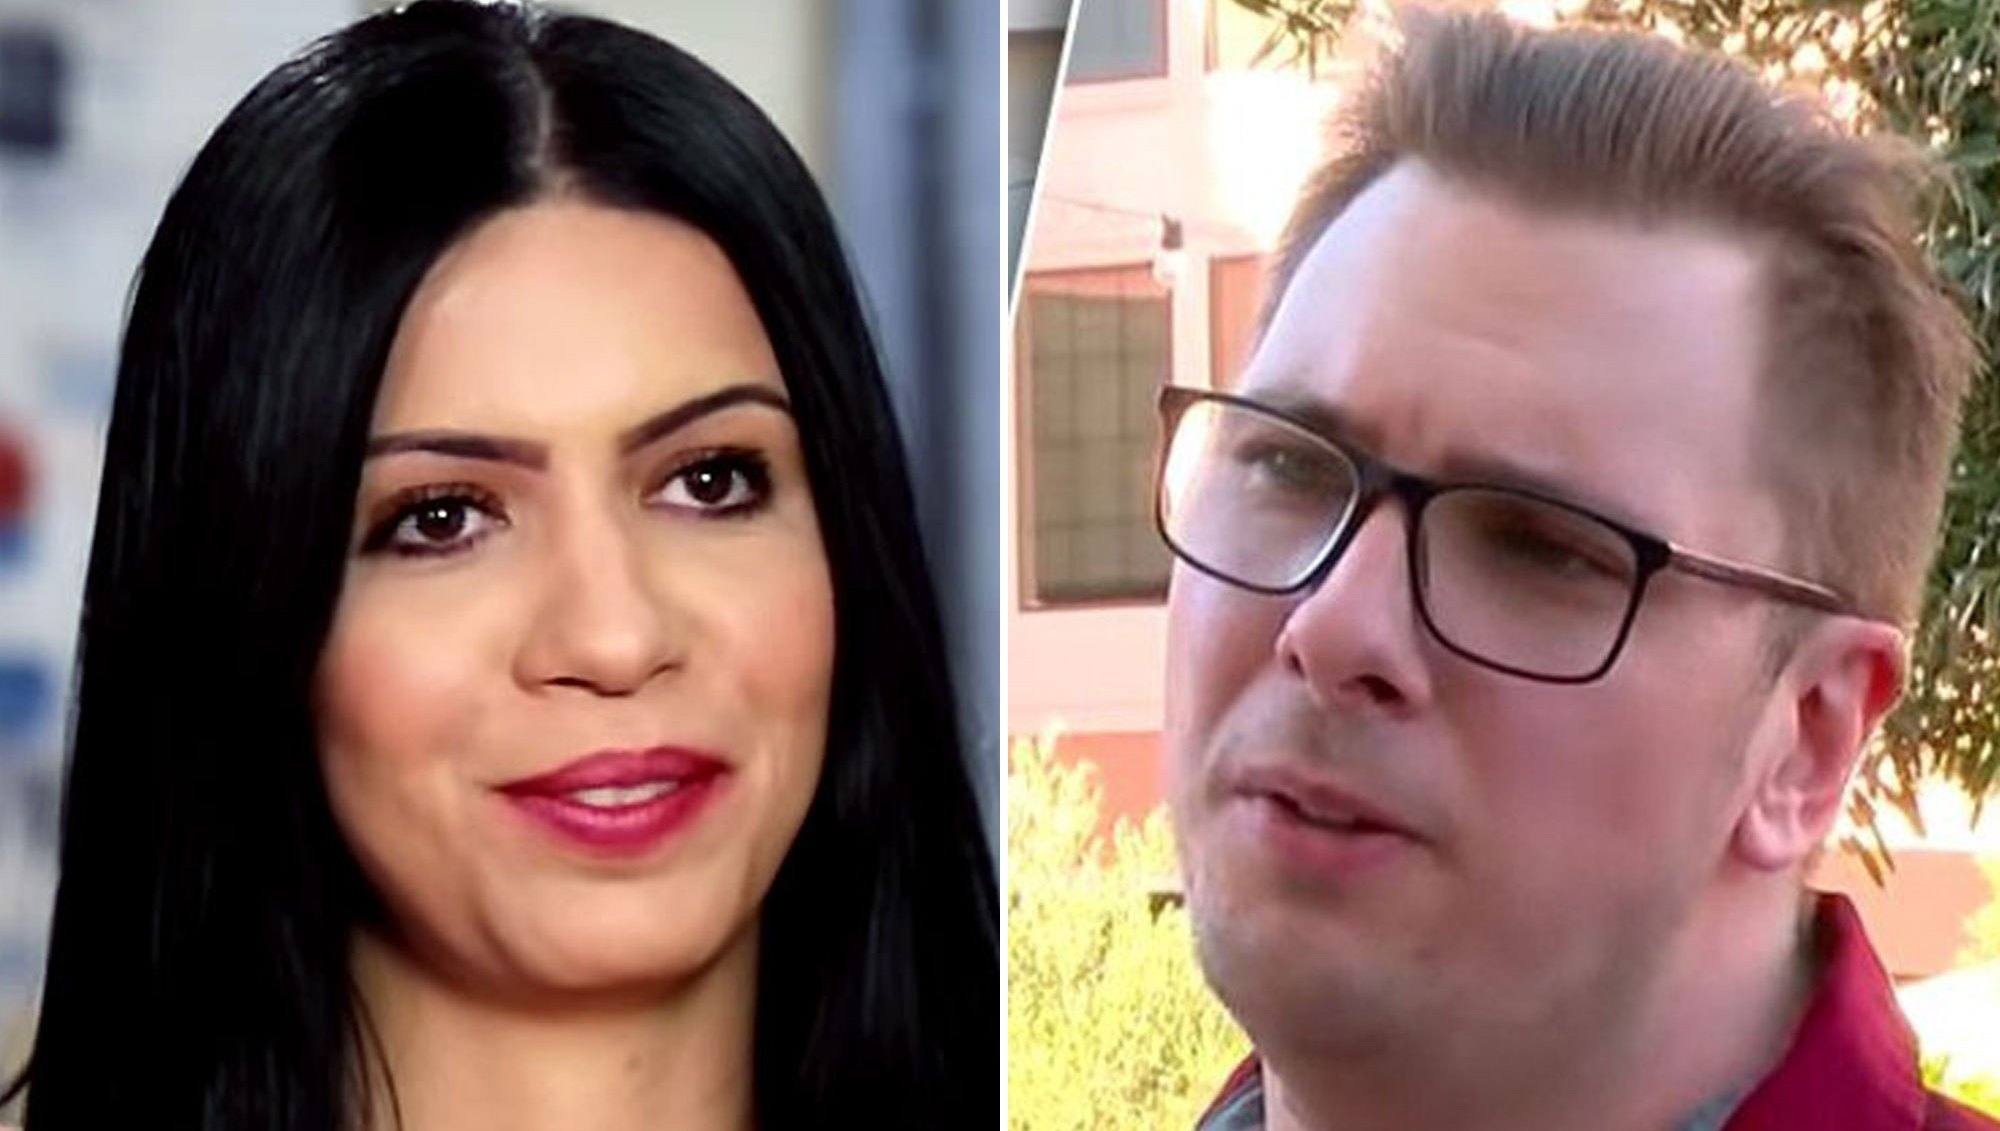 90 Day Fiance's Larissa 'Serious' With BF, Colt Celebrates Separation